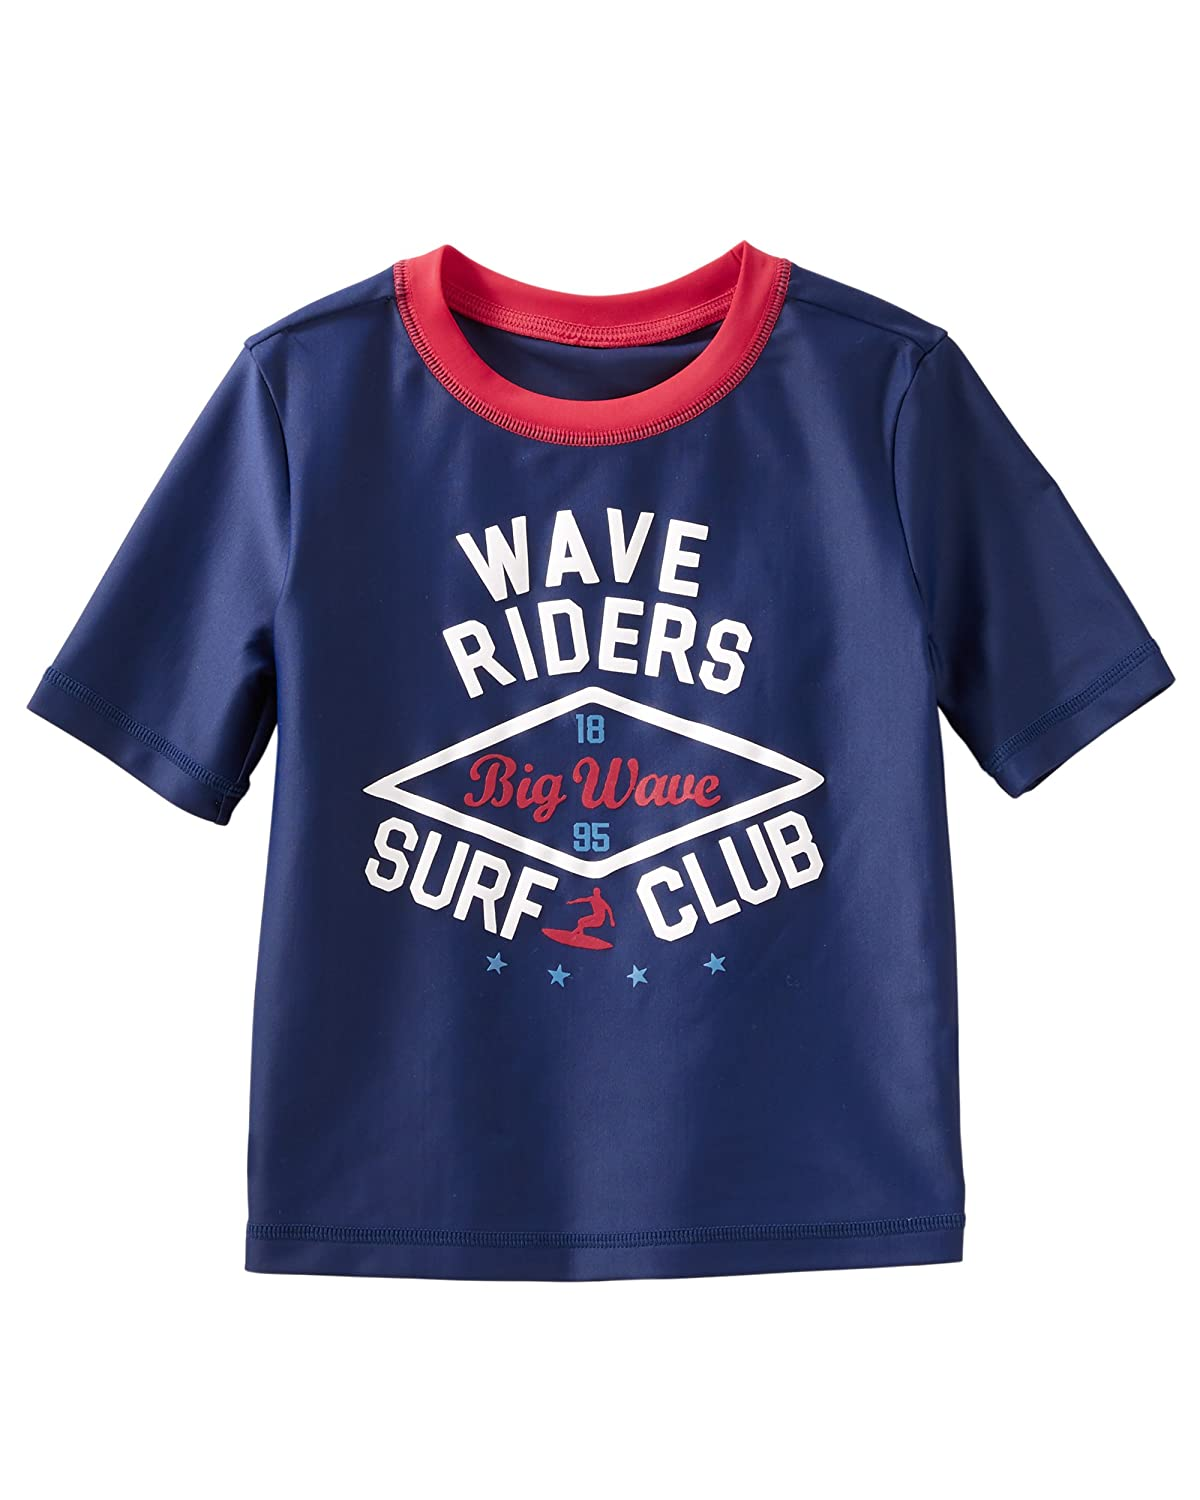 【レビューを書けば送料当店負担】 OshKosh B'Gosh SWIMWEAR 3T|Navy ボーイズ B079DJR8ZK Navy Wave 3T SWIMWEAR 3T|Navy Wave Wave, BRICBLOC-PLOT:e4661c1a --- martinemoeykens.com